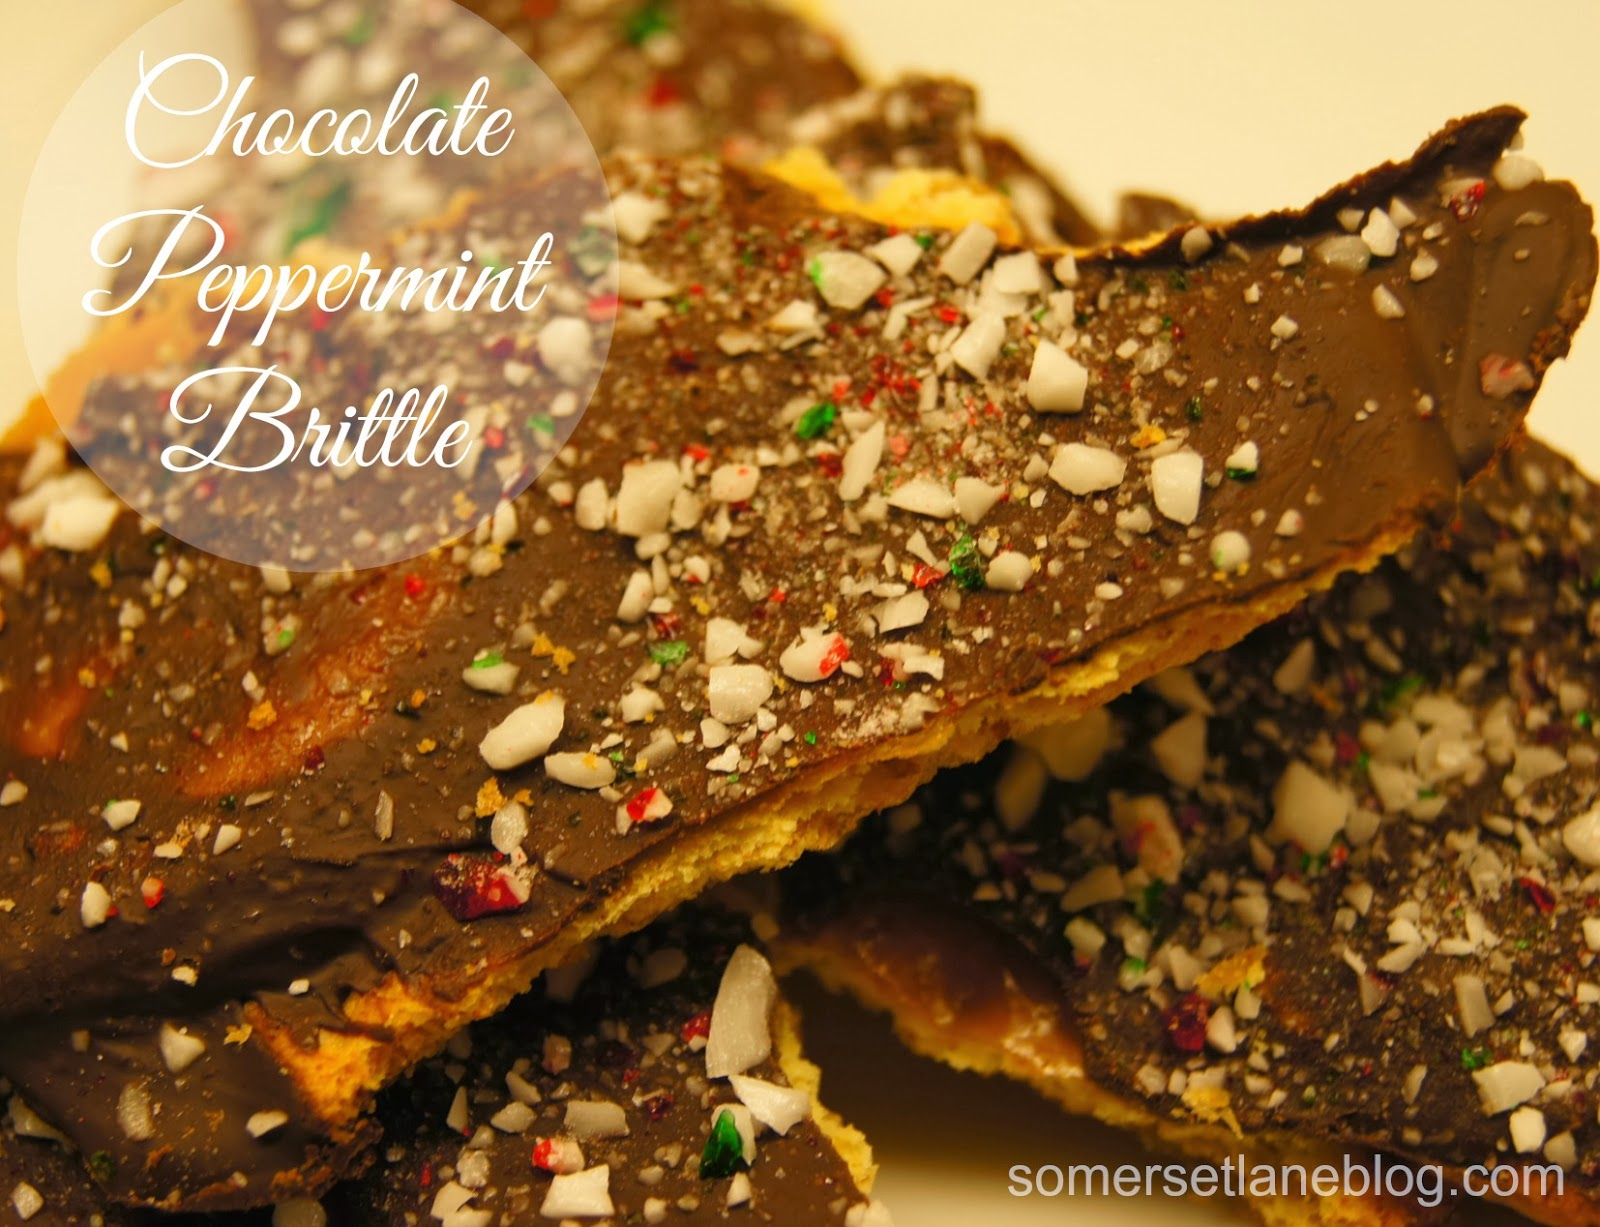 Somerset Lane: Chocolate Peppermint Brittle